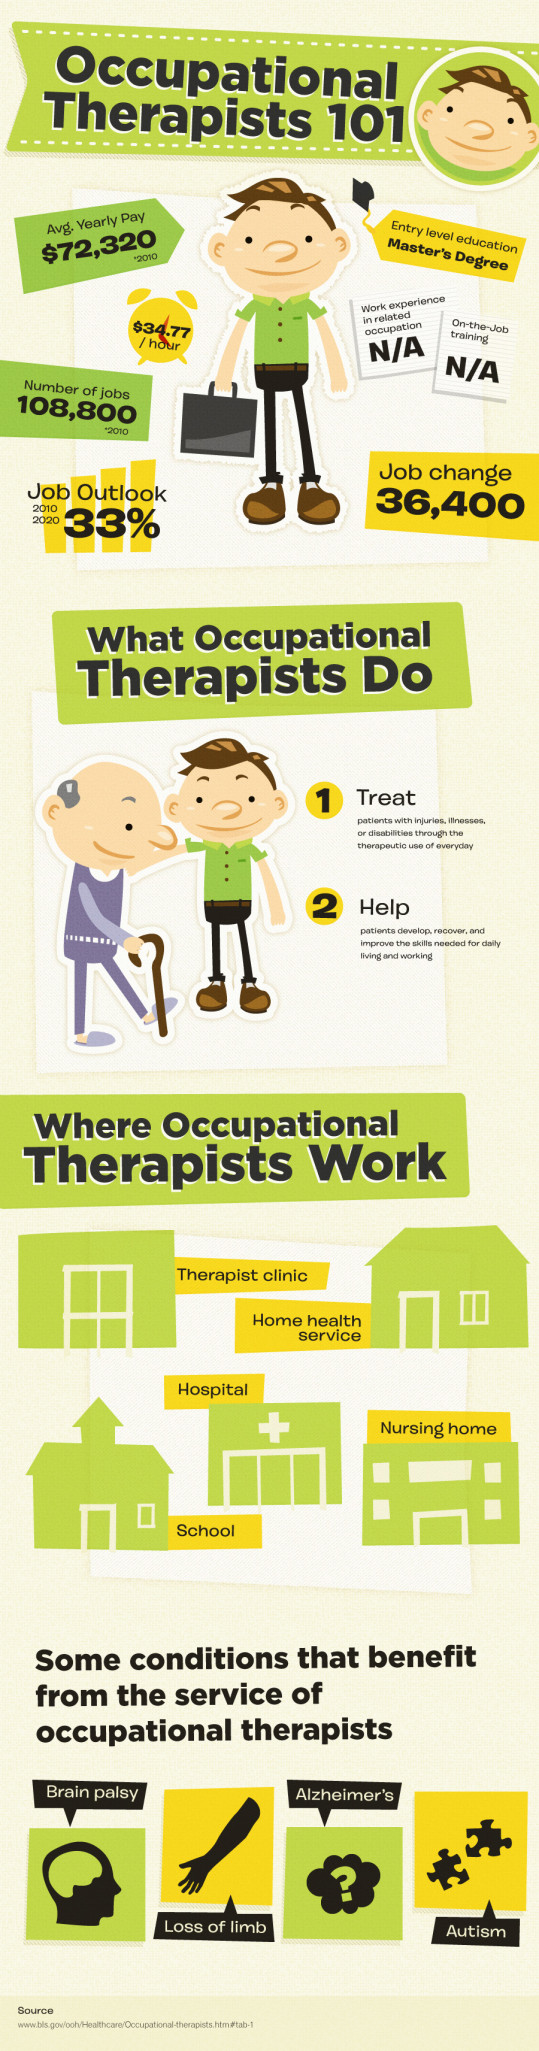 Occupational Therapists 101